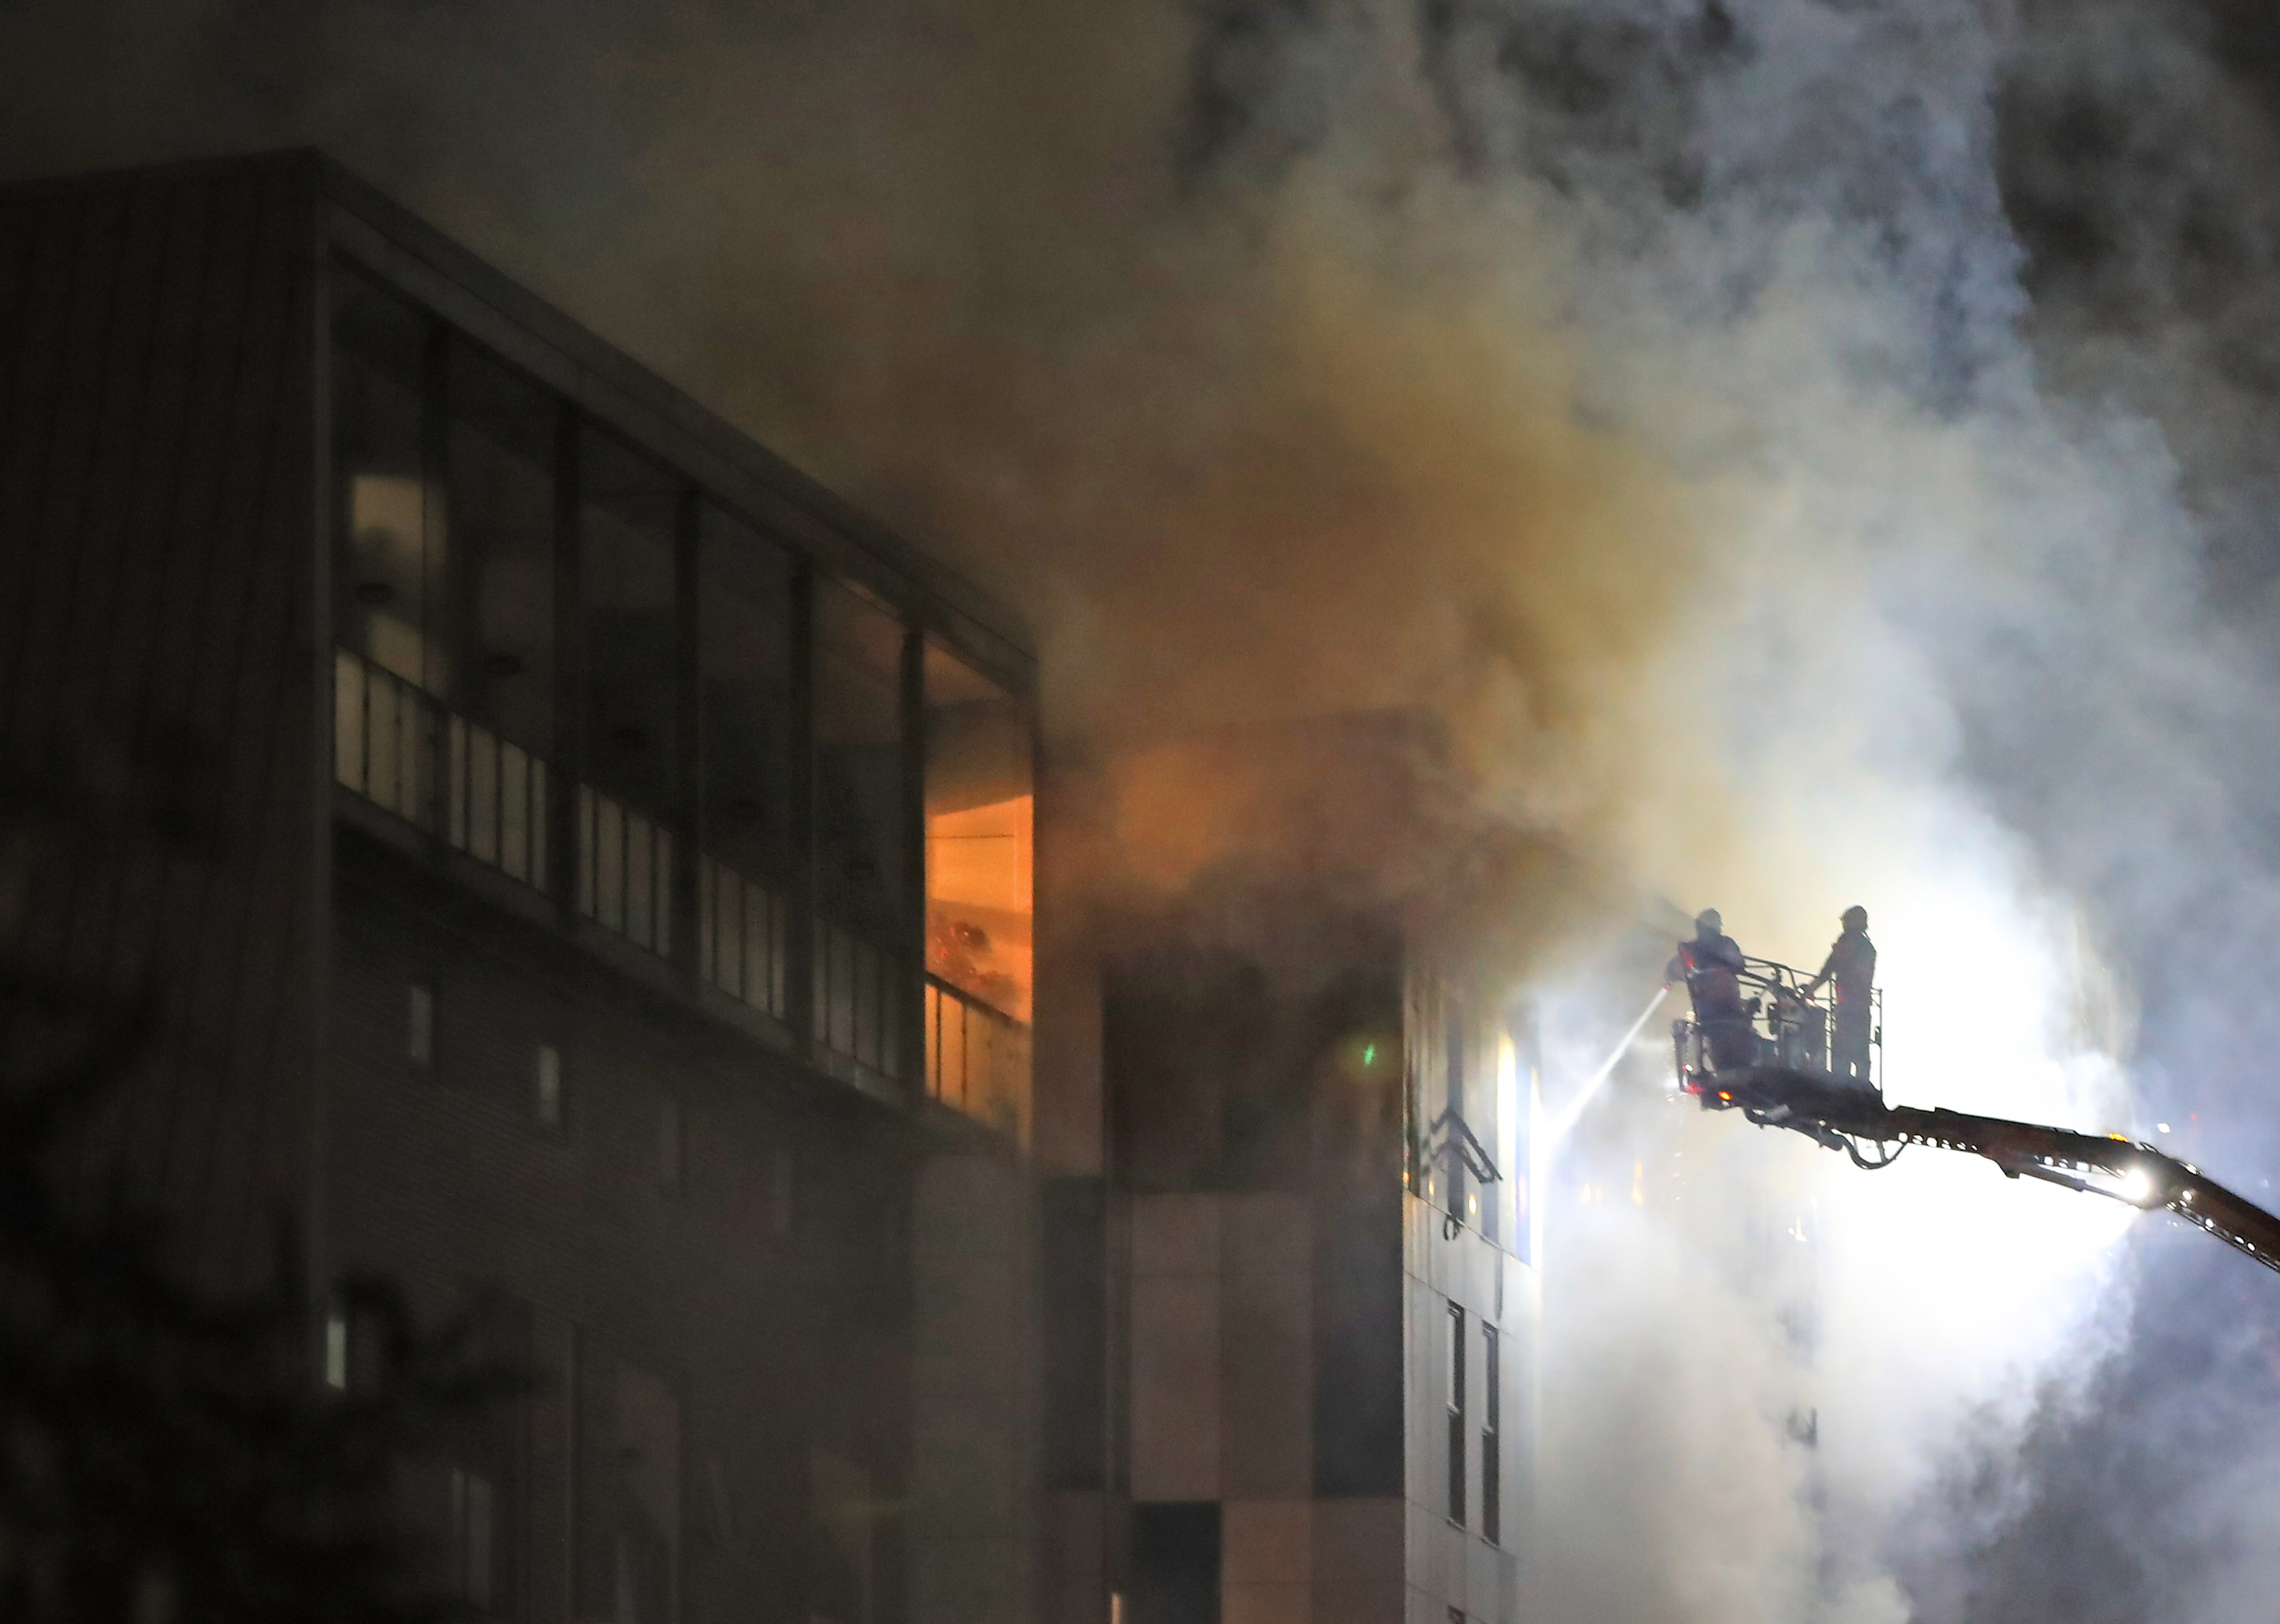 Fire fighters at the scene of the blaze